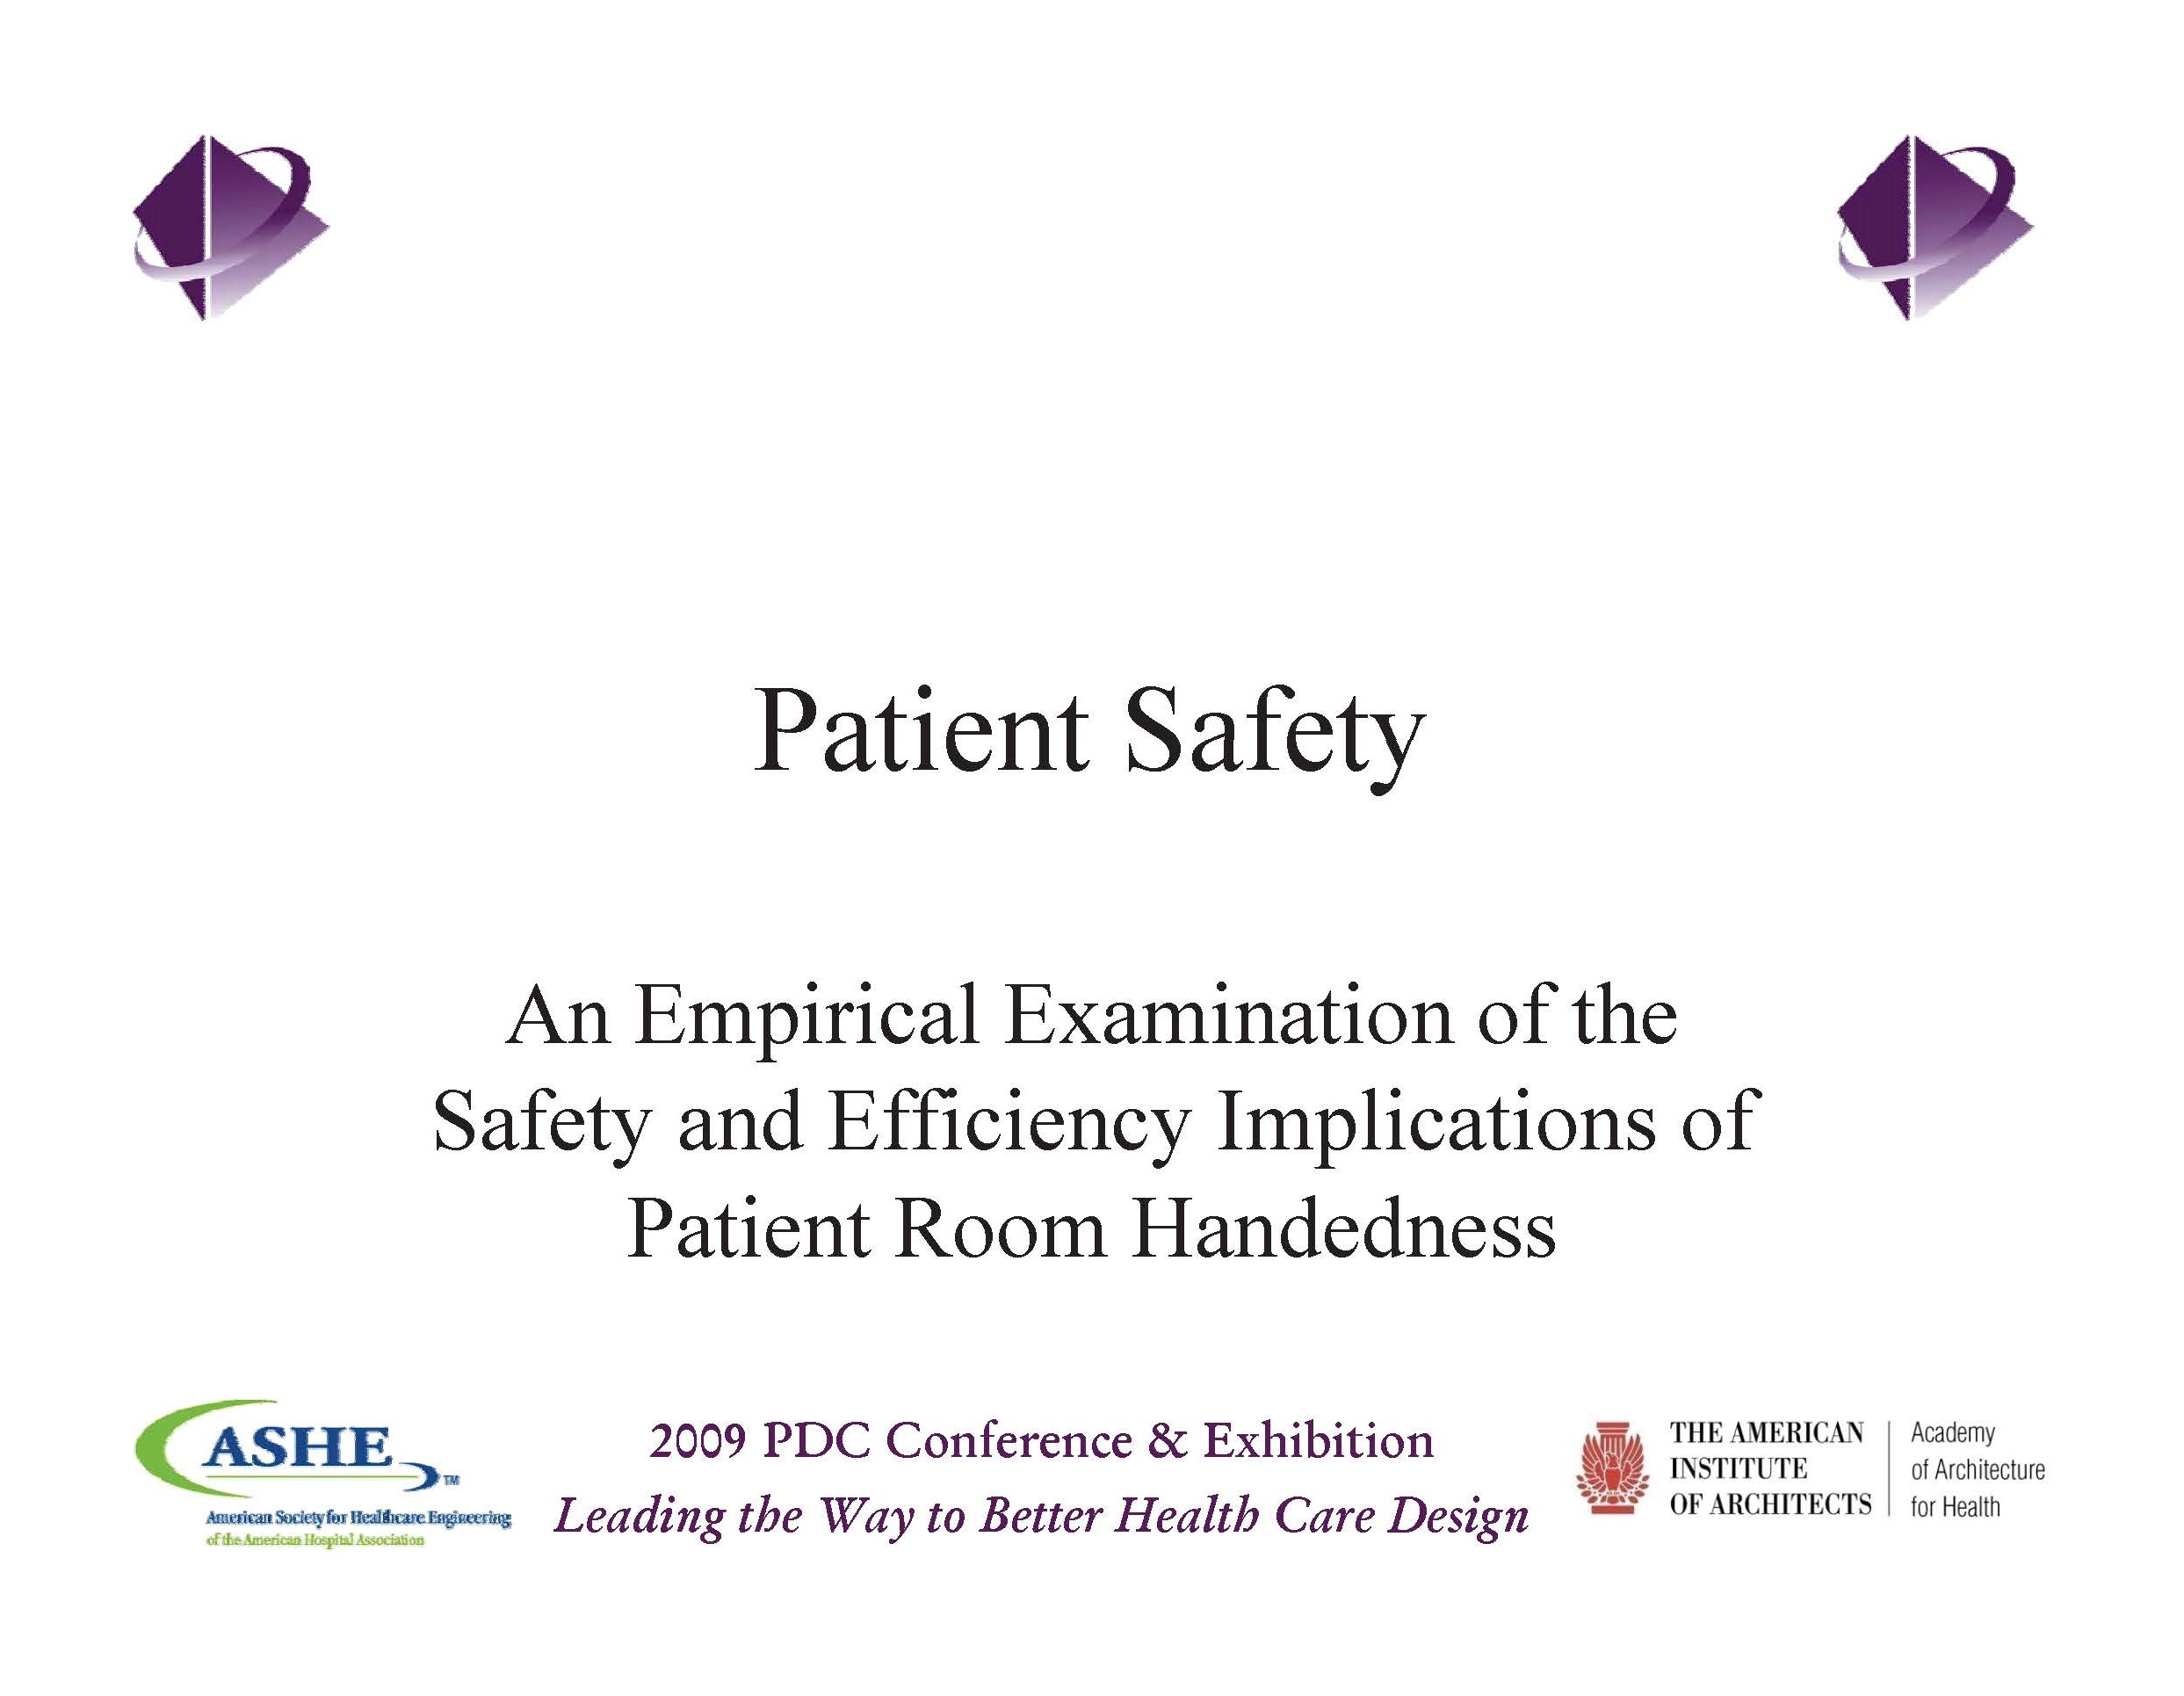 Patient Safety: An Empirical Examination of the Safety and Efficiency Implications of Patient Room Handedness     Thomas E. Harvey, Debajyoti Pati, Jennie Evans,  Carolyn Cason   Healthcare Facility Planning  ,   Design, and Construction (PDC) Conference